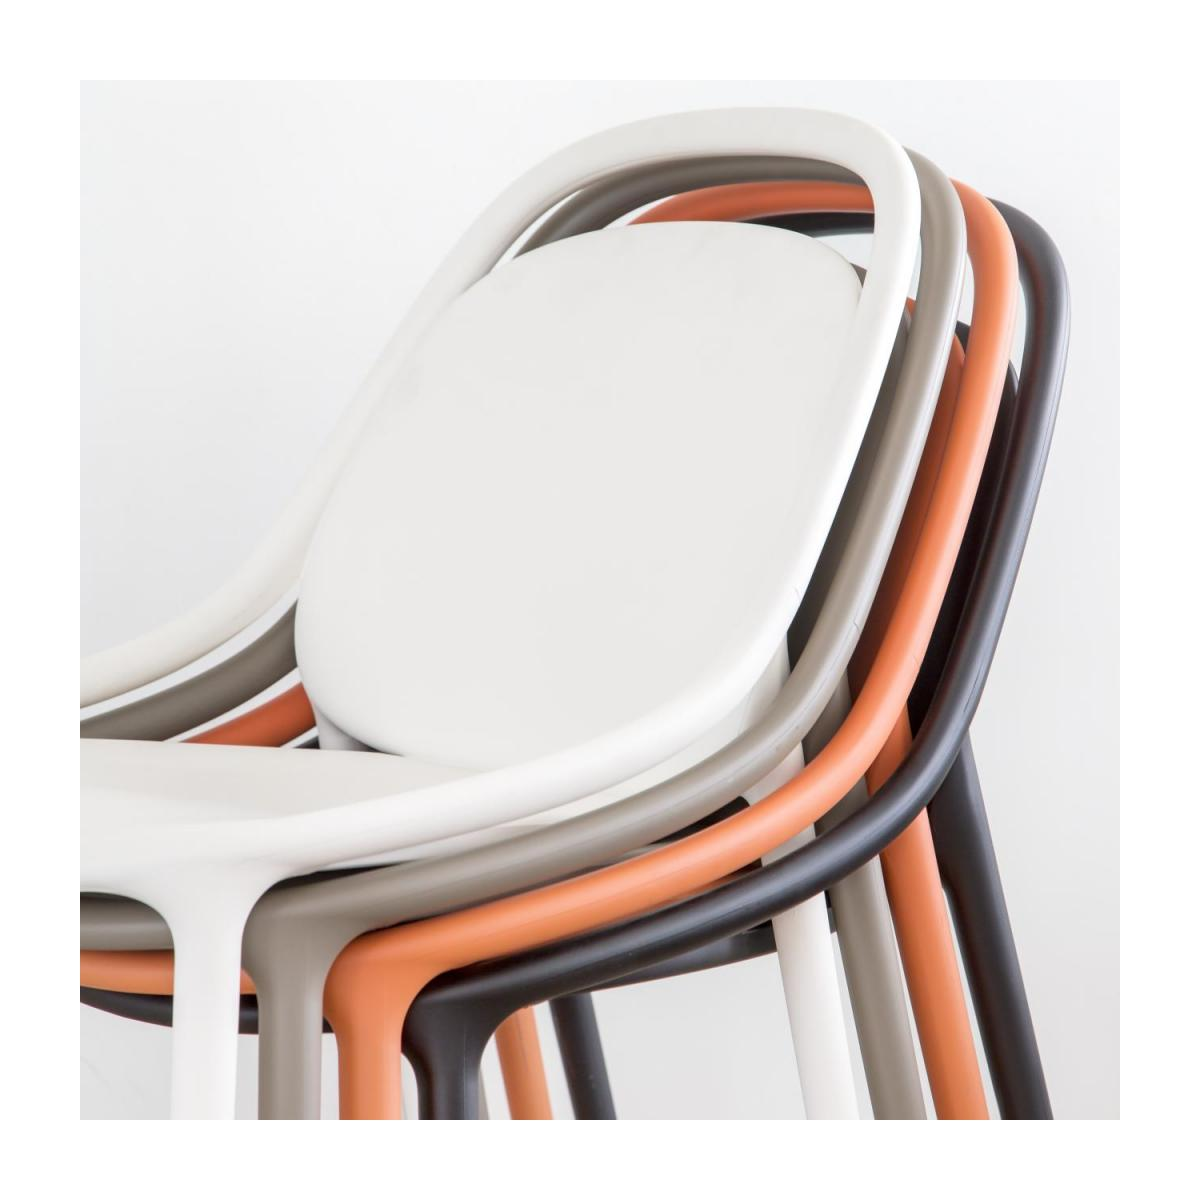 Chaise orange en polypropylène n°6